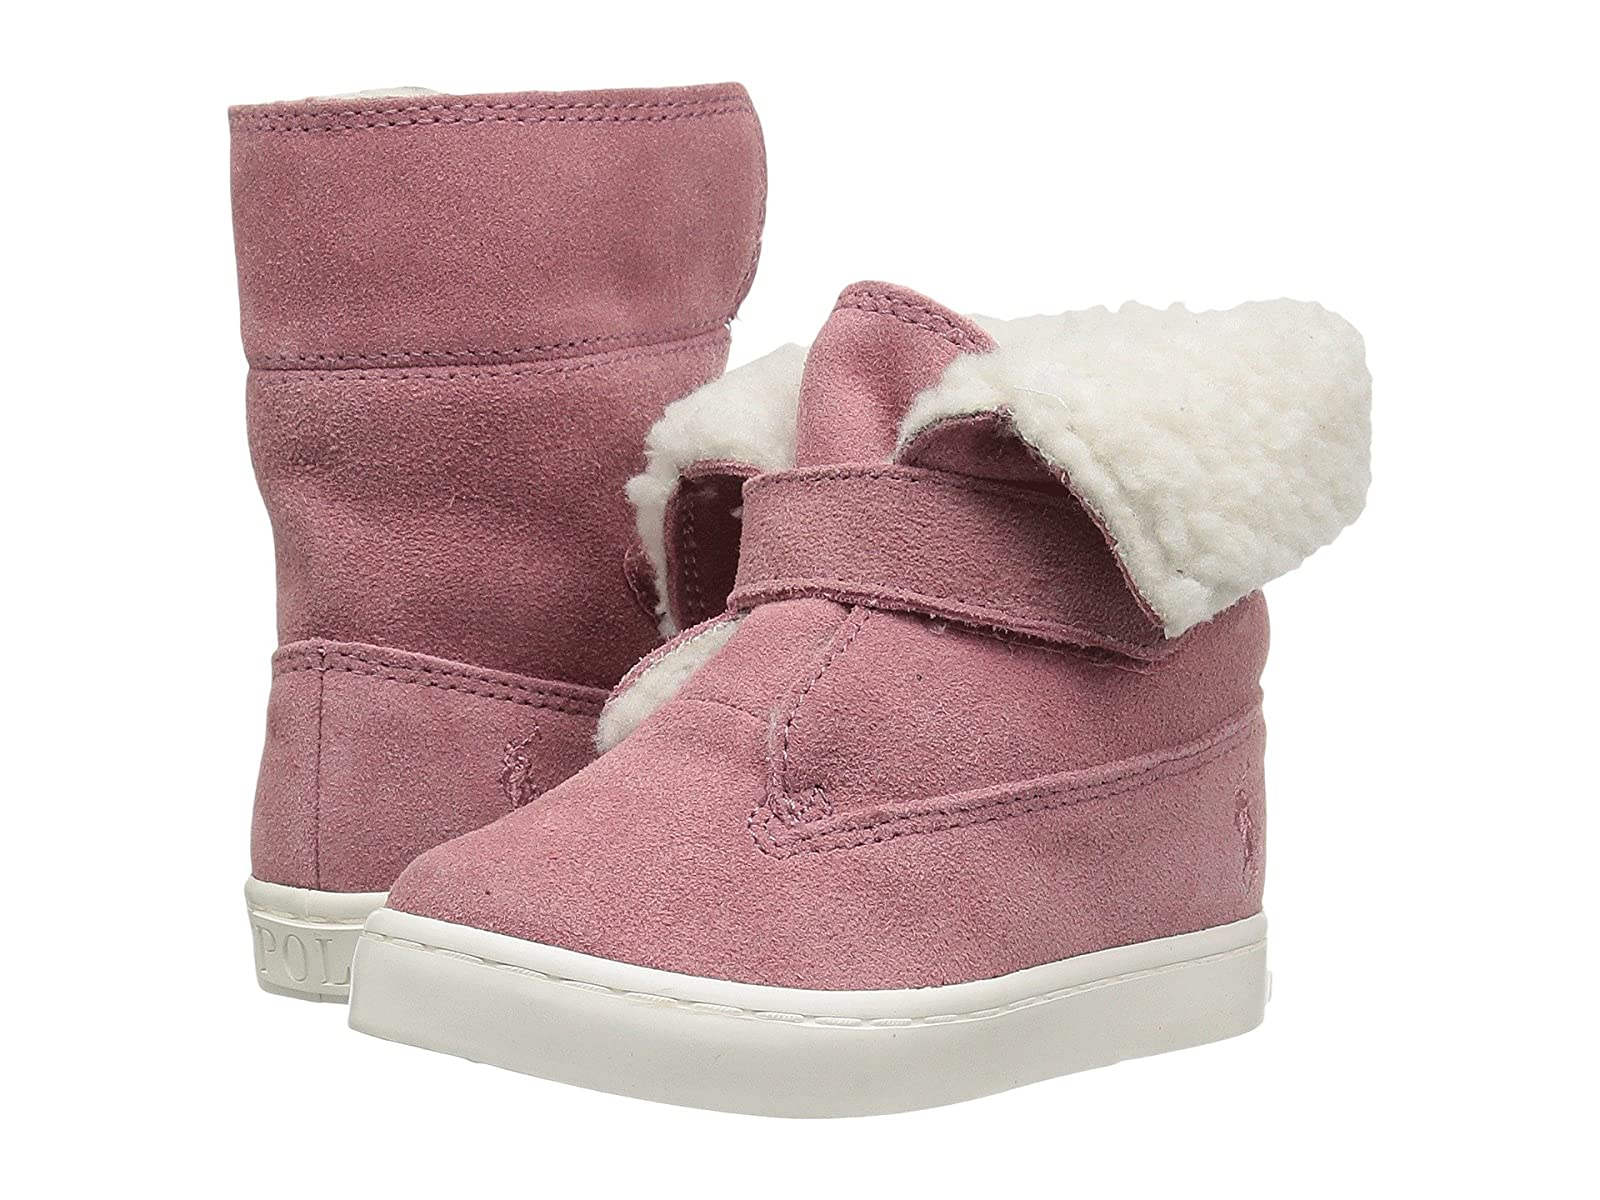 Polo Ralph Lauren Kids Siena Bootie (Toddler/Little Kid)Economical and quality shoes